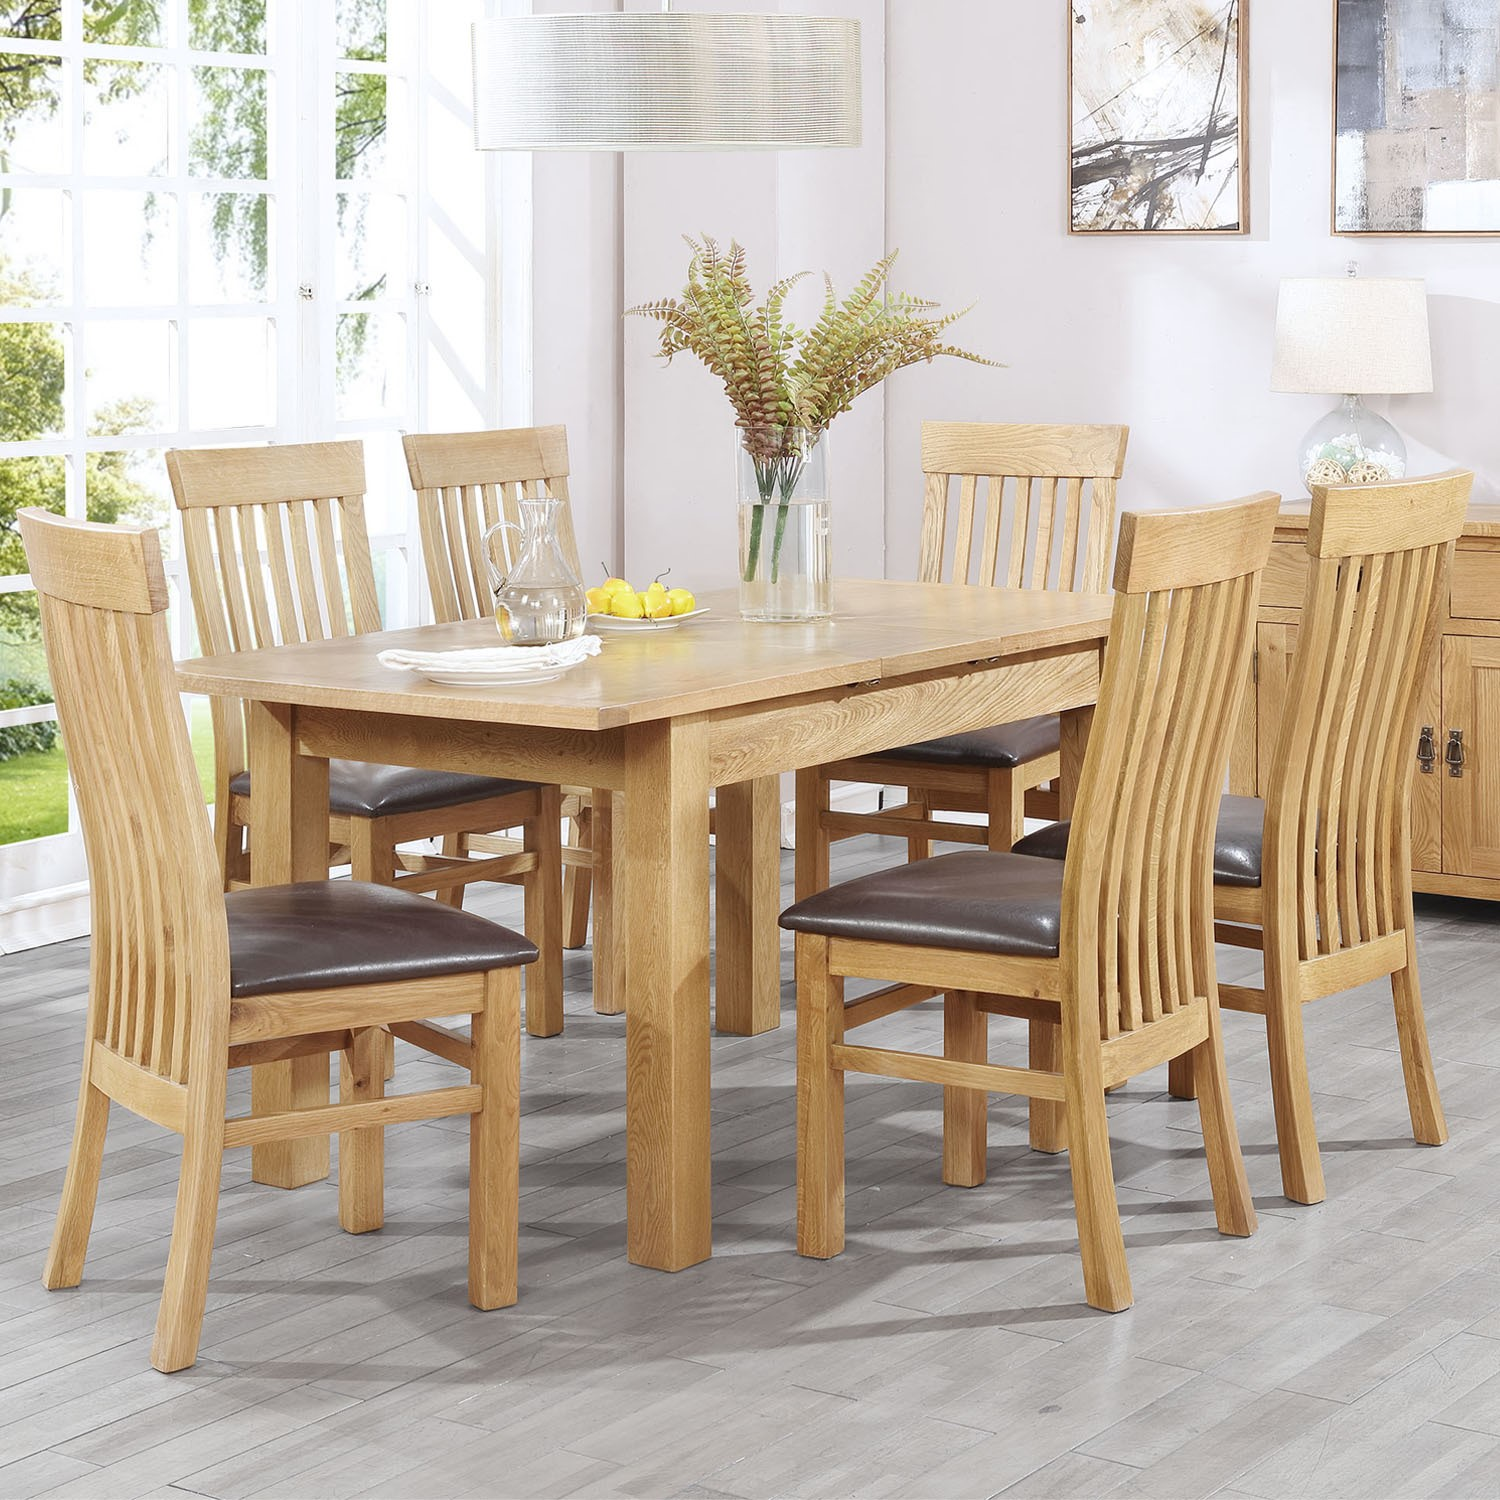 Extendable Solid Oak Dining Table And 6 Chairs Rustic Saxon Range Furniture123